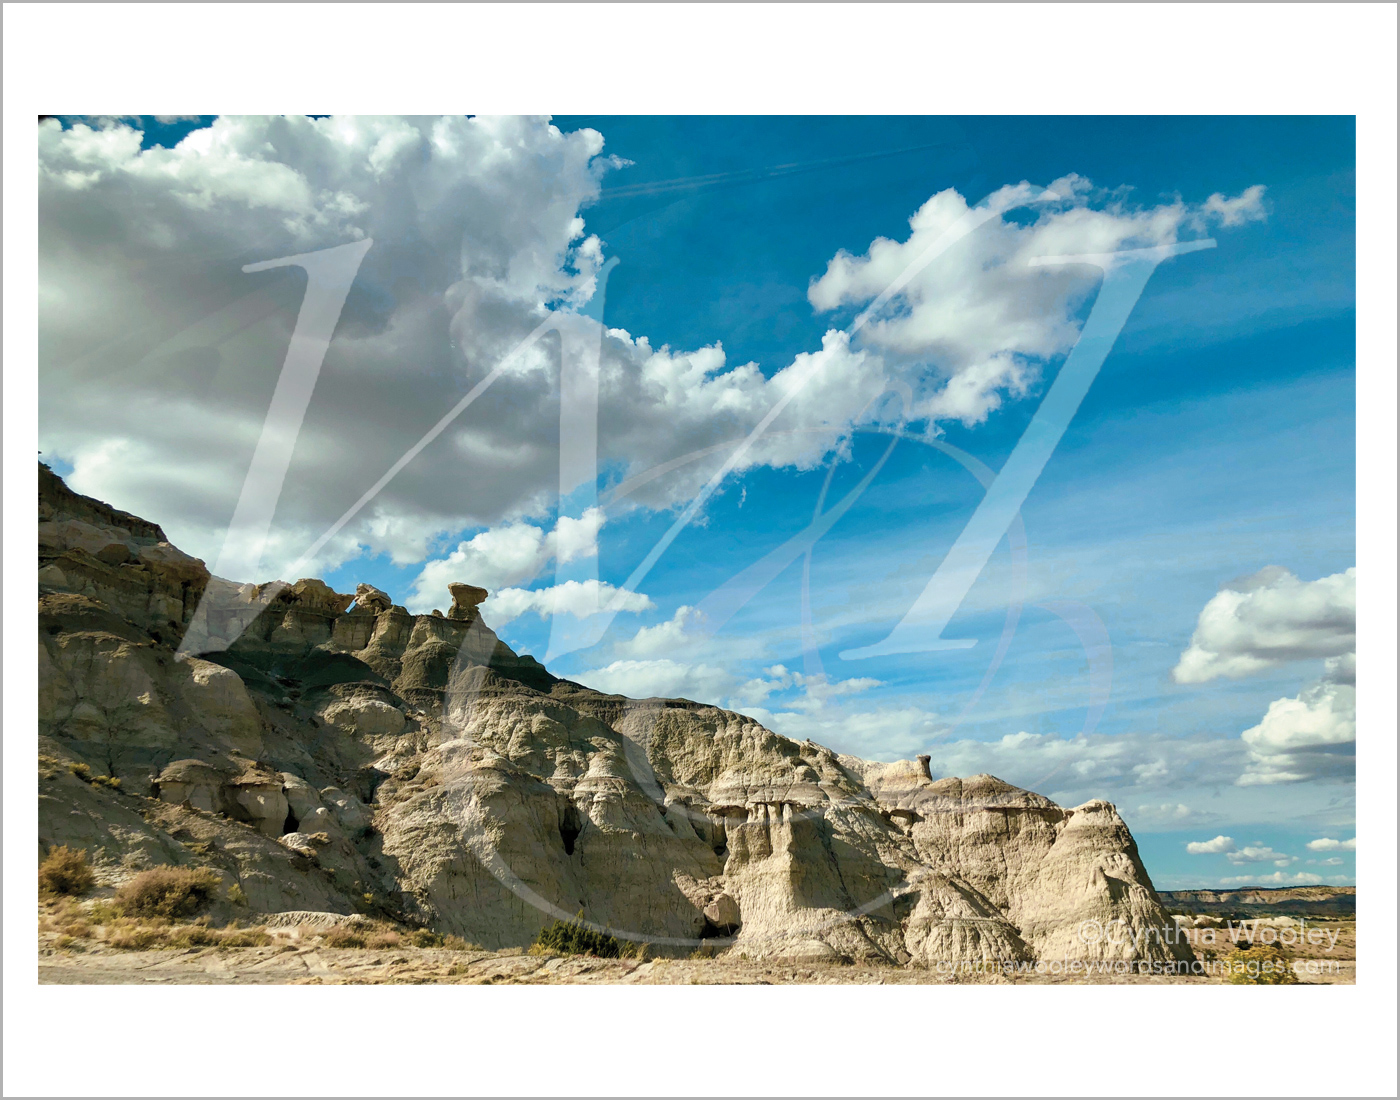 Rocks and Clouds - New Mexico: Print